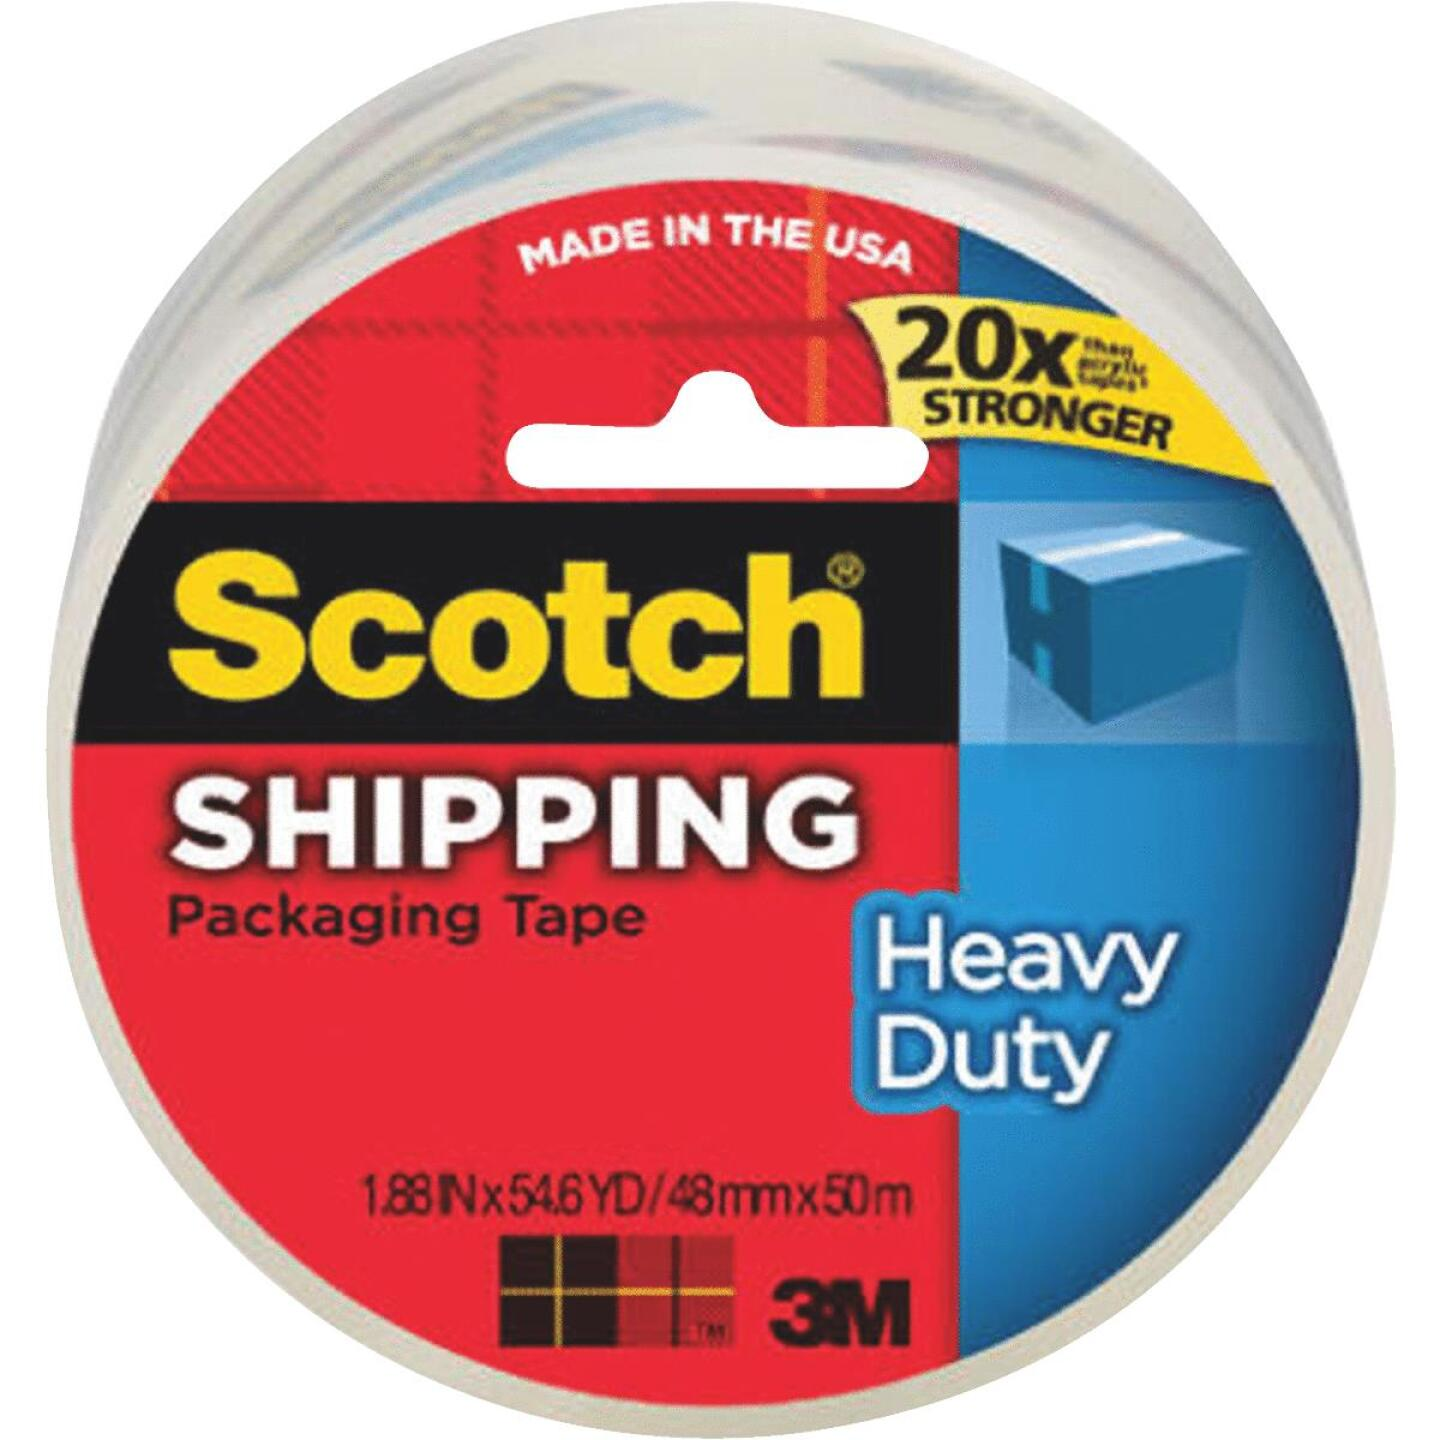 3M Scotch 1.88 In. X 54.6 Yd. High Performance Packaging Tape Image 1